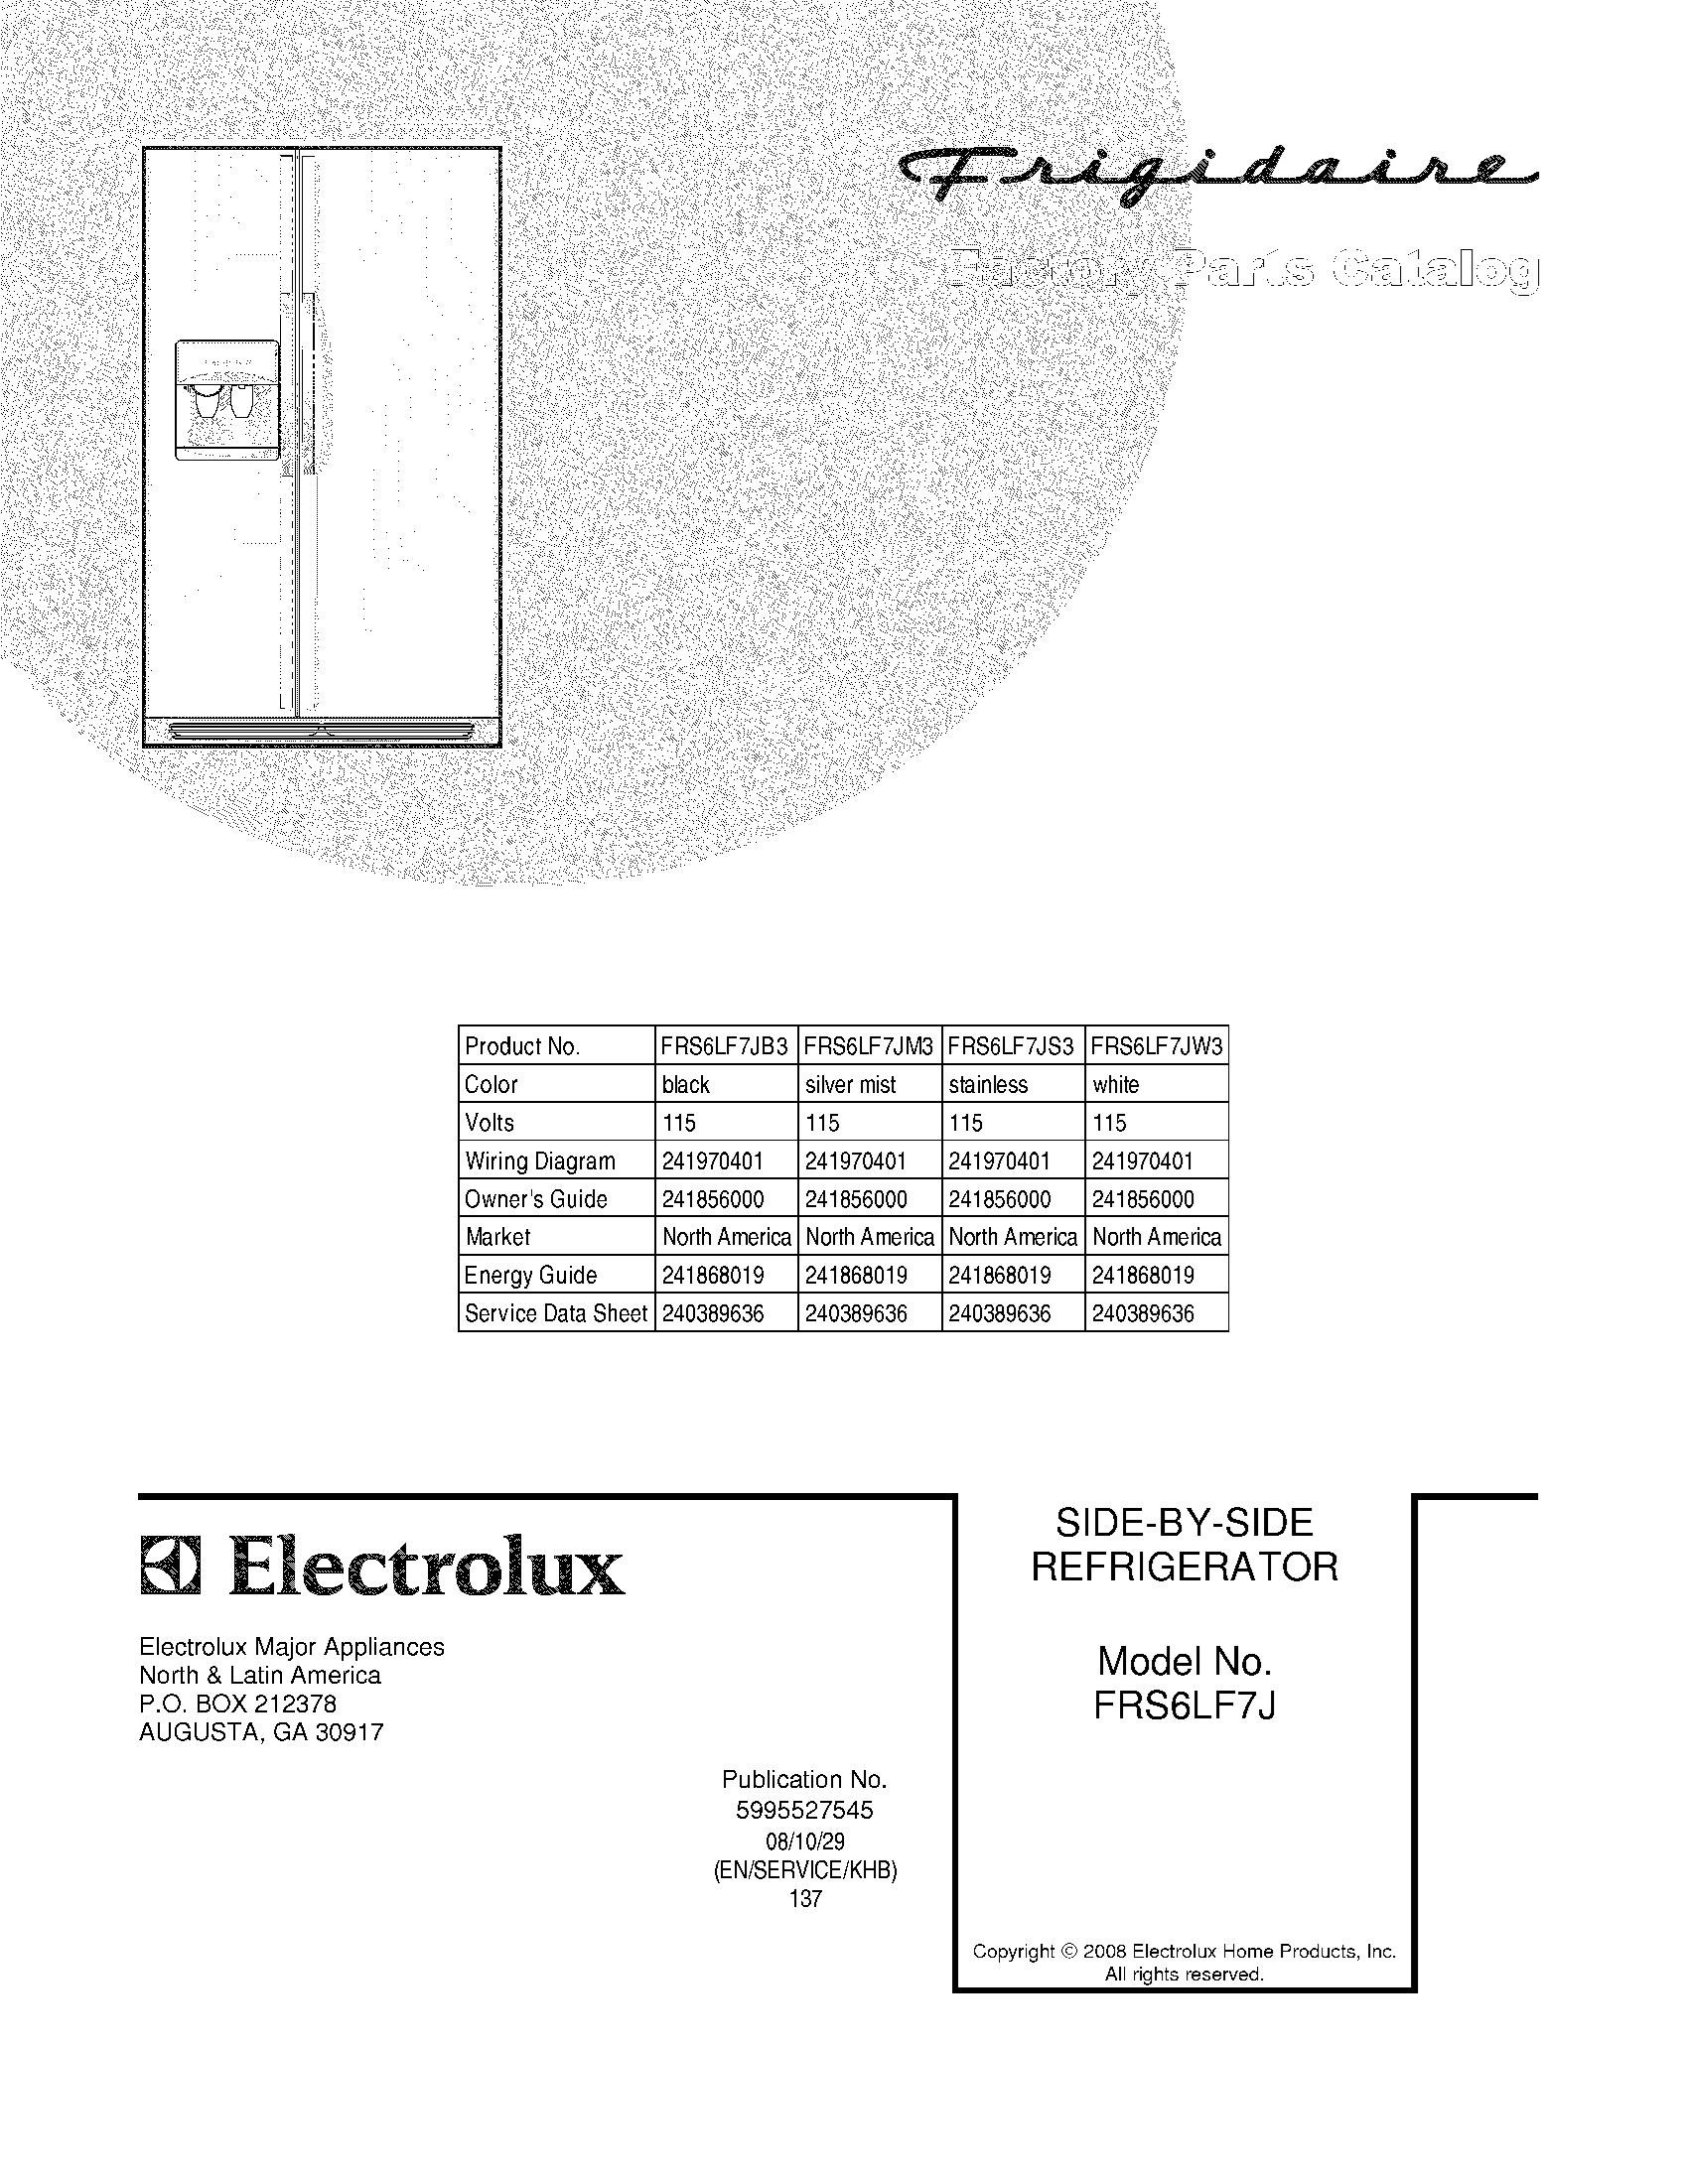 ElectroluxImg_19000101 20150717_00096855 frigidaire refrigerator wiring diagram dolgular com wiring diagram for gler341as2 at edmiracle.co